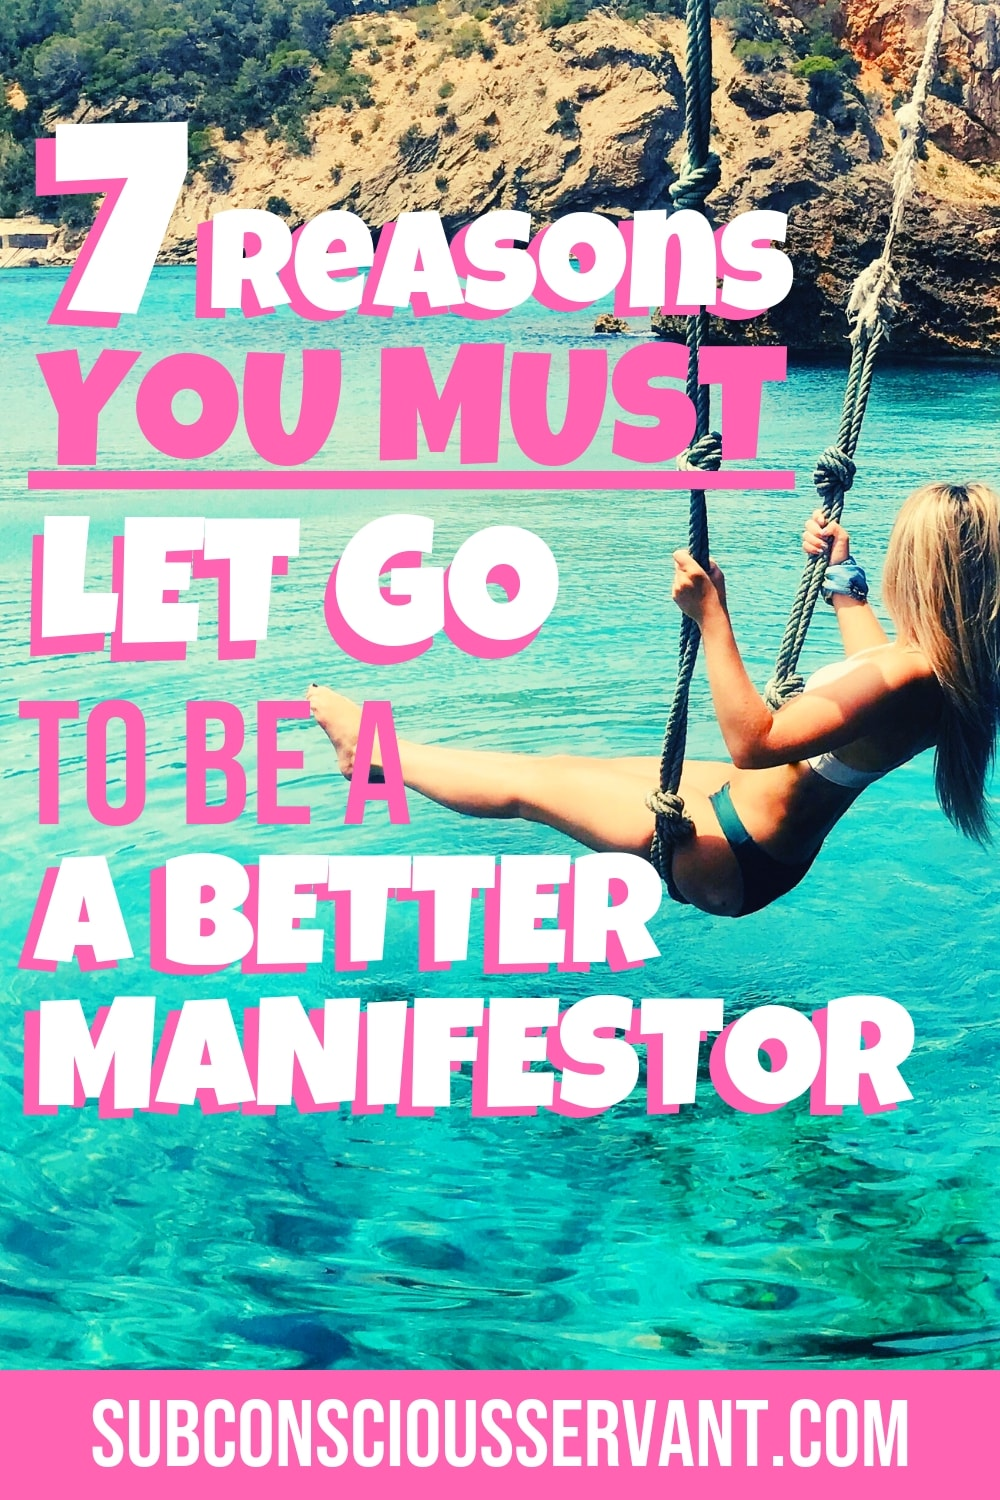 So you've got everything you need to be a great manifestor. You know all the law of attraction techniques, and you apply them faithfully. You find yourself having a series of small successes. But for some reason, when it comes to the stuff that truly matters to you, you aren\'t doing so great. The reason you struggle is that you can\'t detach yourself from the outcome and let go. This post will explain. #SubconsciousServant #LawOfAttraction #Manifesting #LOA #Spirituality #IntentionalLiving